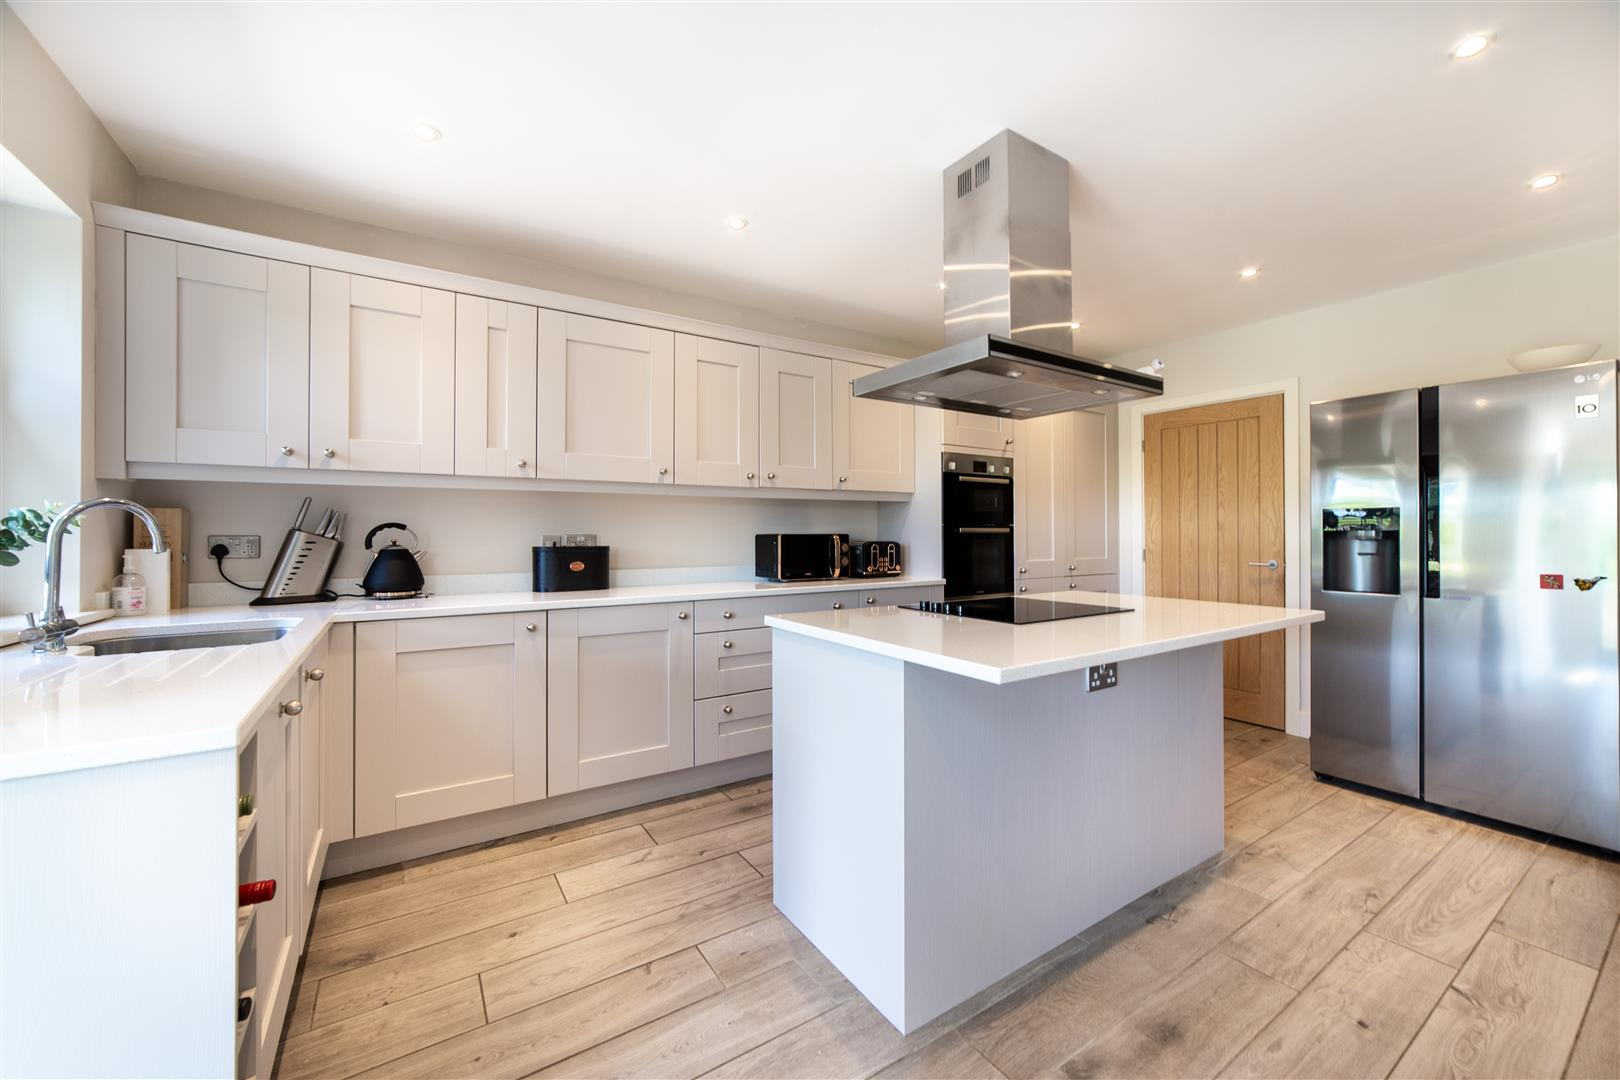 4 bed detached house for sale, Hexham  - Property Image 20